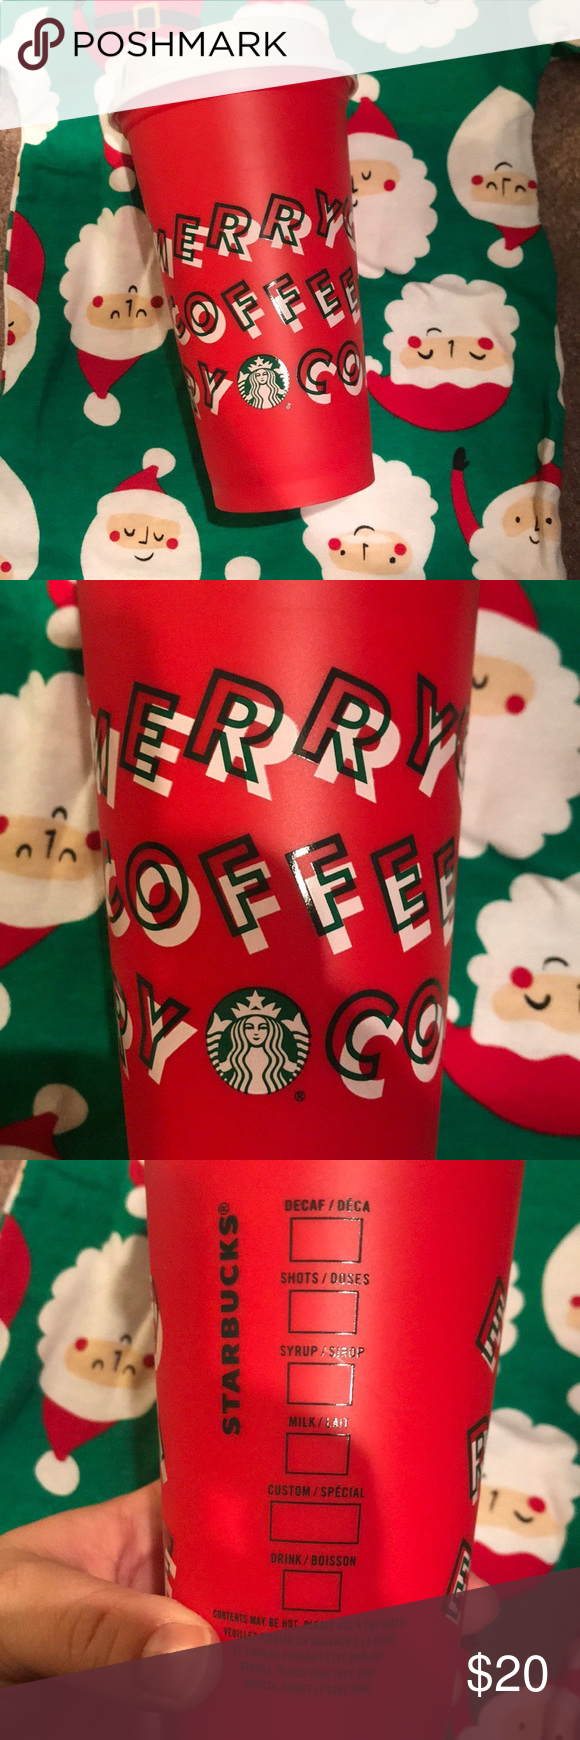 Reusable Christmas 🎄 Starbucks plastic travel mug NWOT